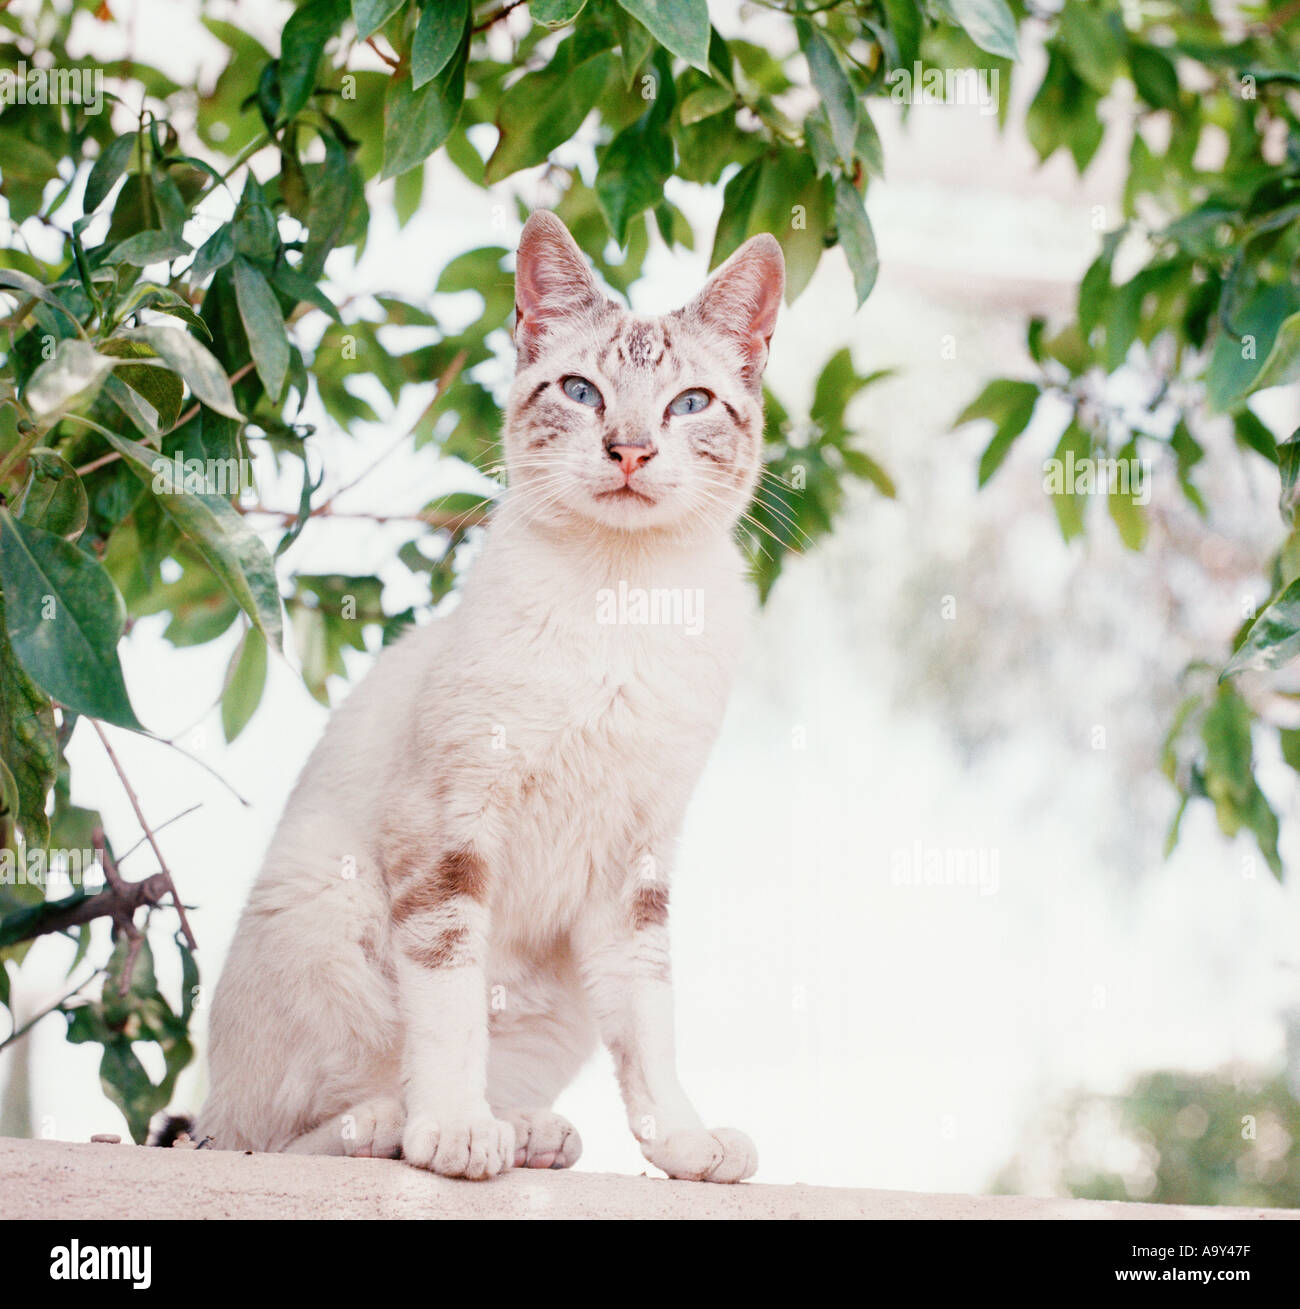 white tabby cat sat by trees - Stock Image